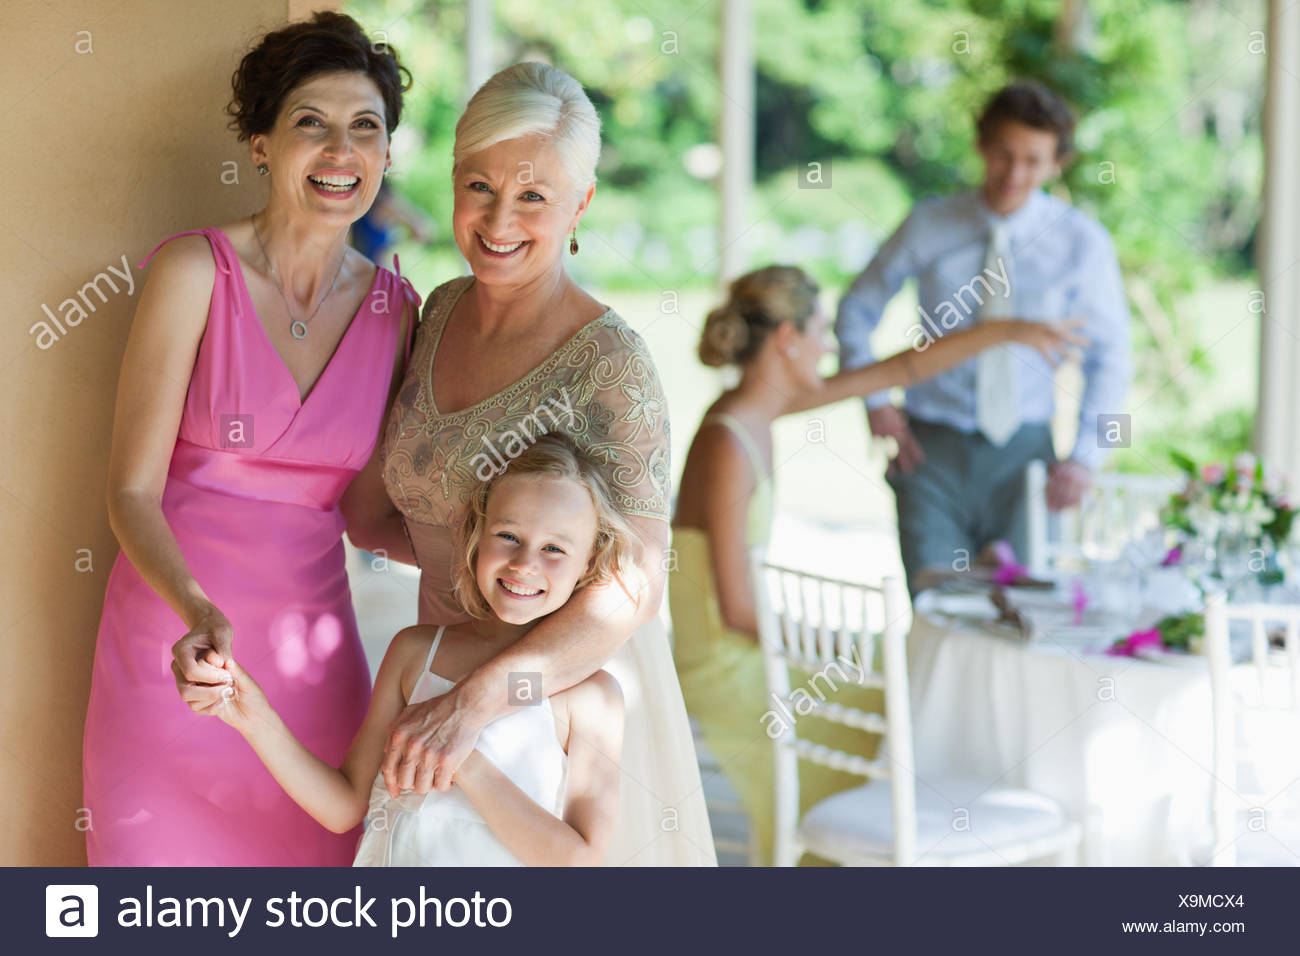 Family holding hands at wedding reception - Stock Image